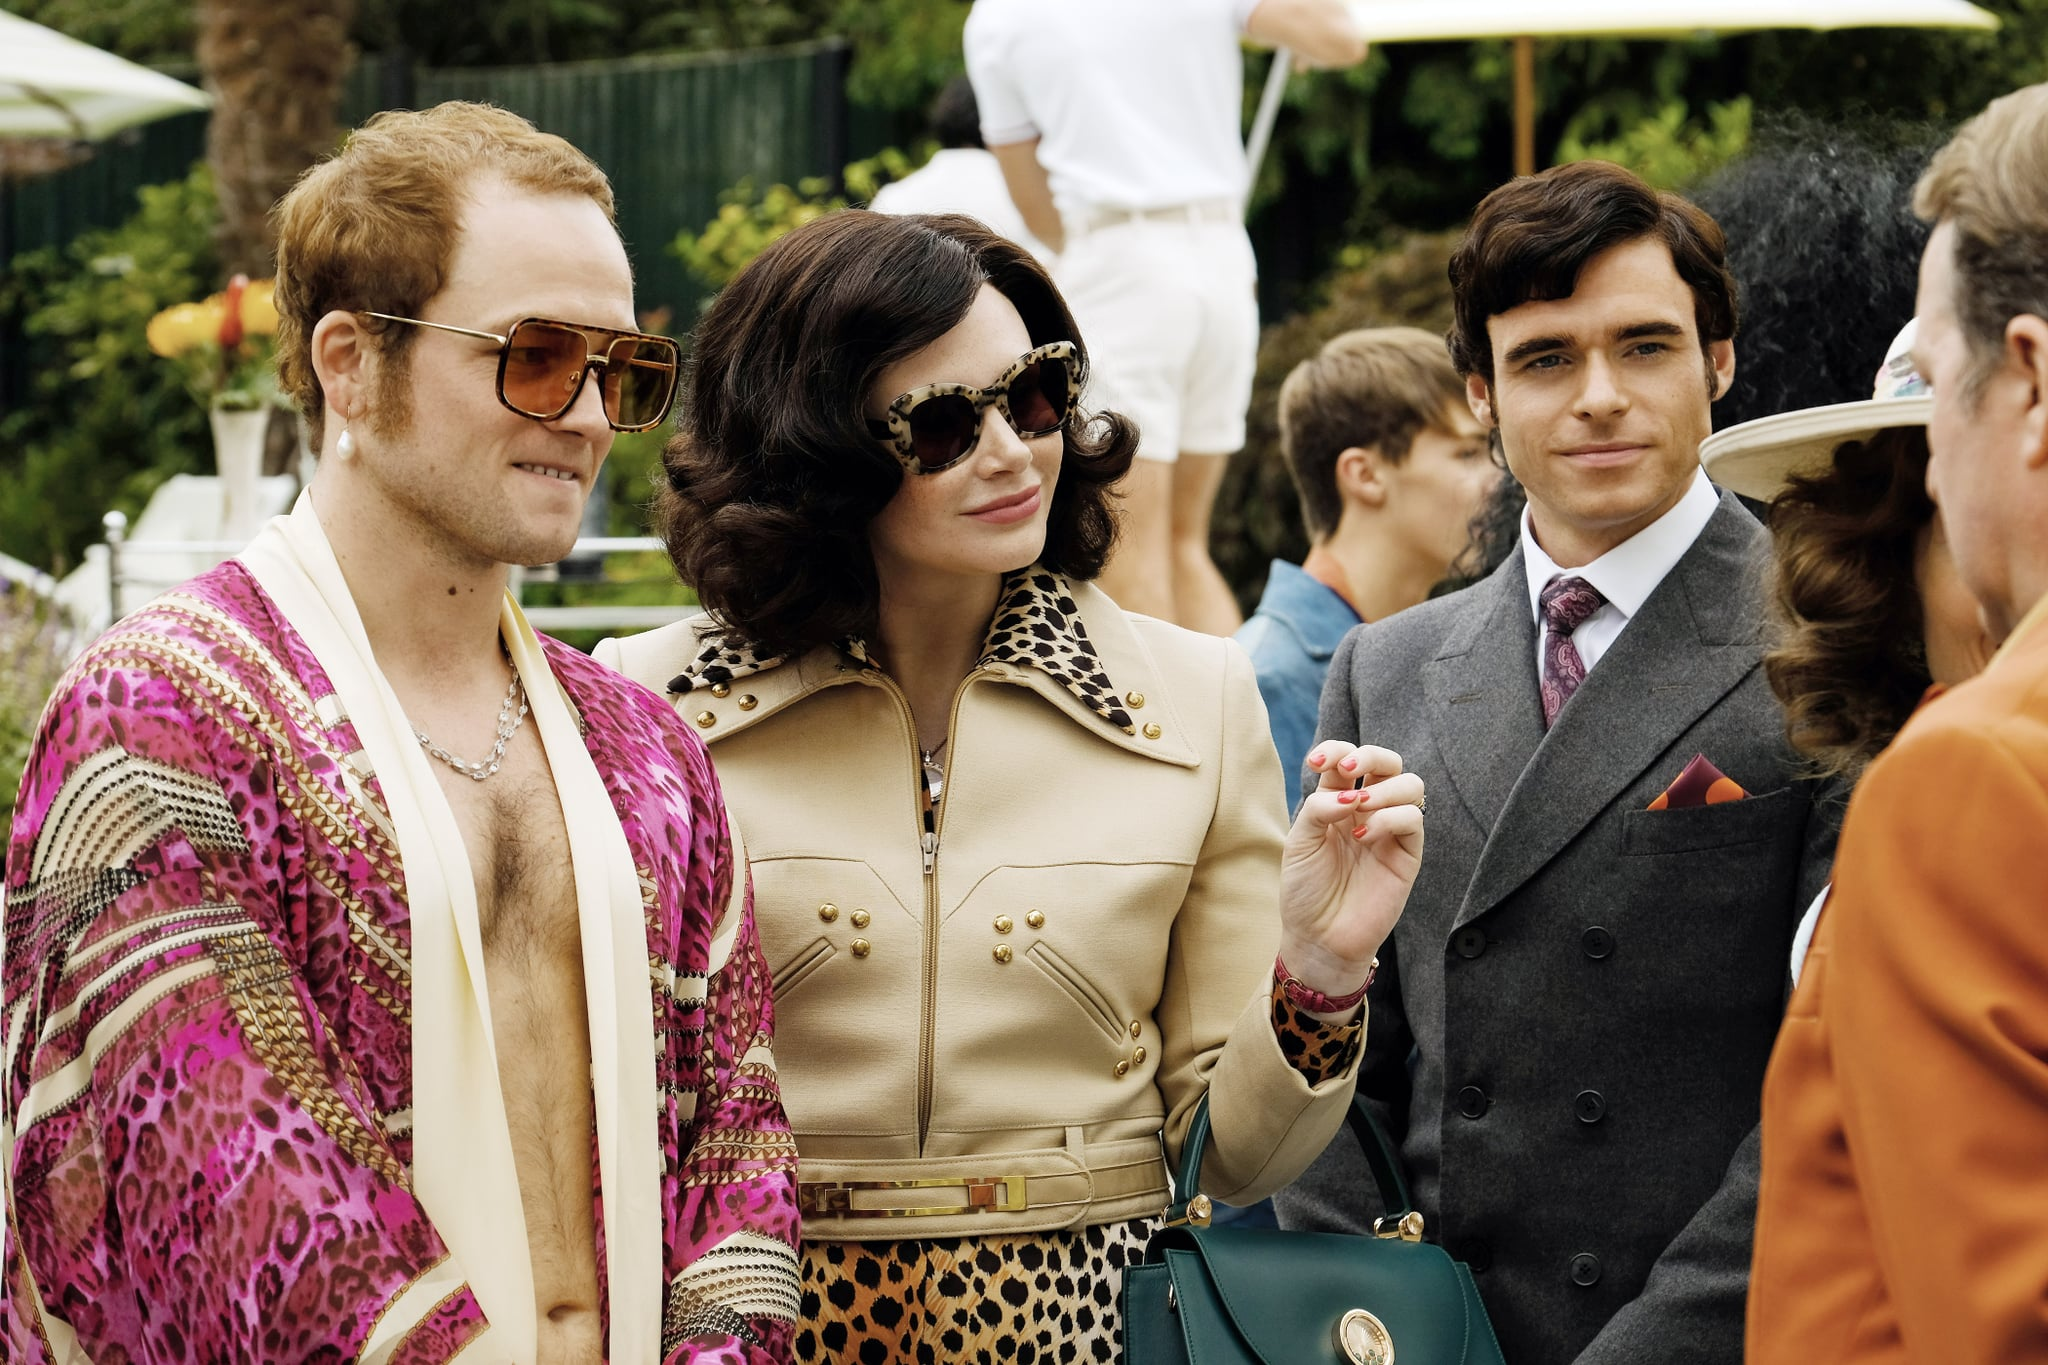 ROCKETMAN, from left: Taron Egerton as Elton John, Bryce Dallas Howard, Richard Madden, 2019. ph: David Appleby /  Paramount / Courtesy Everett Collection